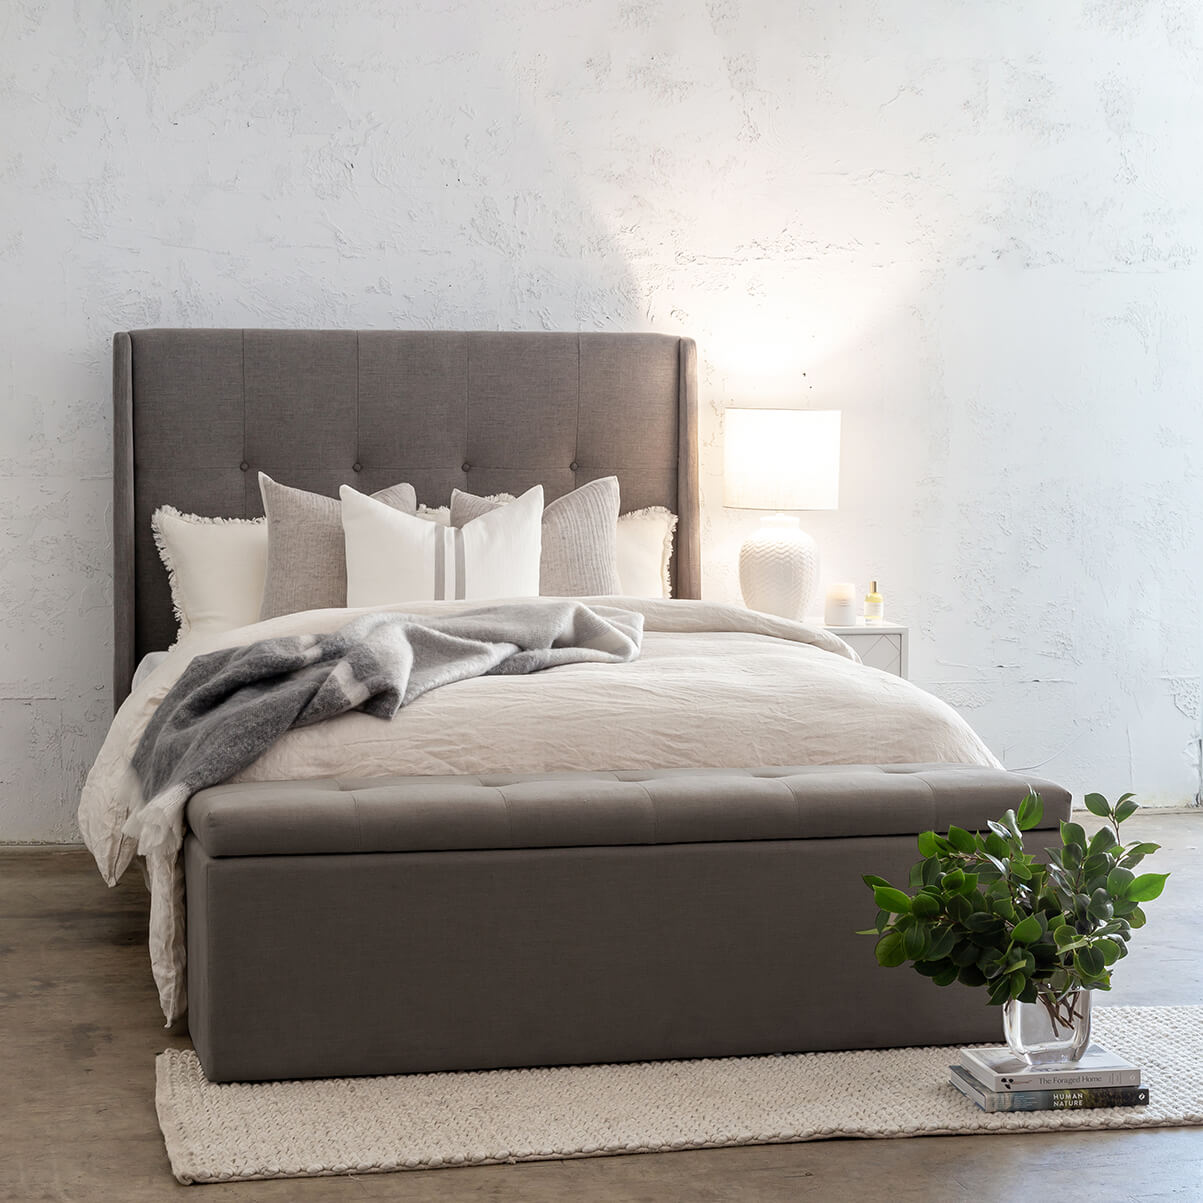 BAIRSTOW BUTTON BACK BED HEAD  |  SMOKE GREY LINEN  |  KING